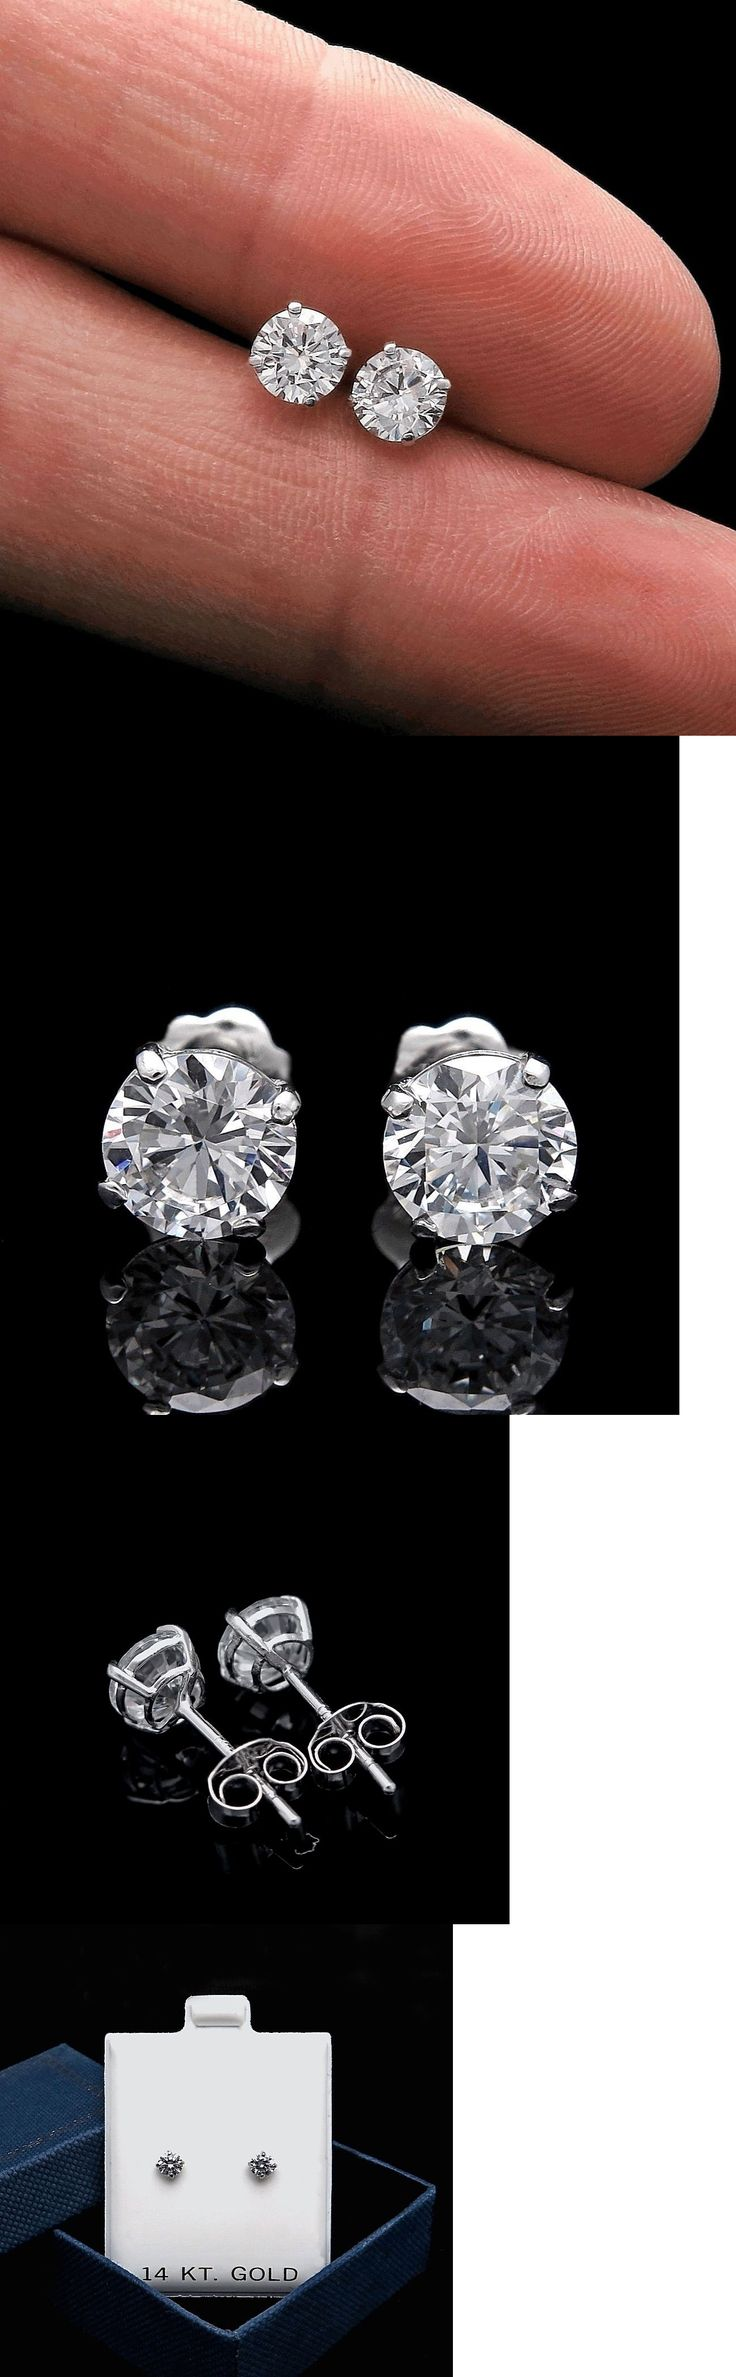 Diamond 10986: 1.25Ct Brilliant Created Diamond Solitaire Earrings 14K White Gold Round Studs -> BUY IT NOW ONLY: $122.96 on eBay!